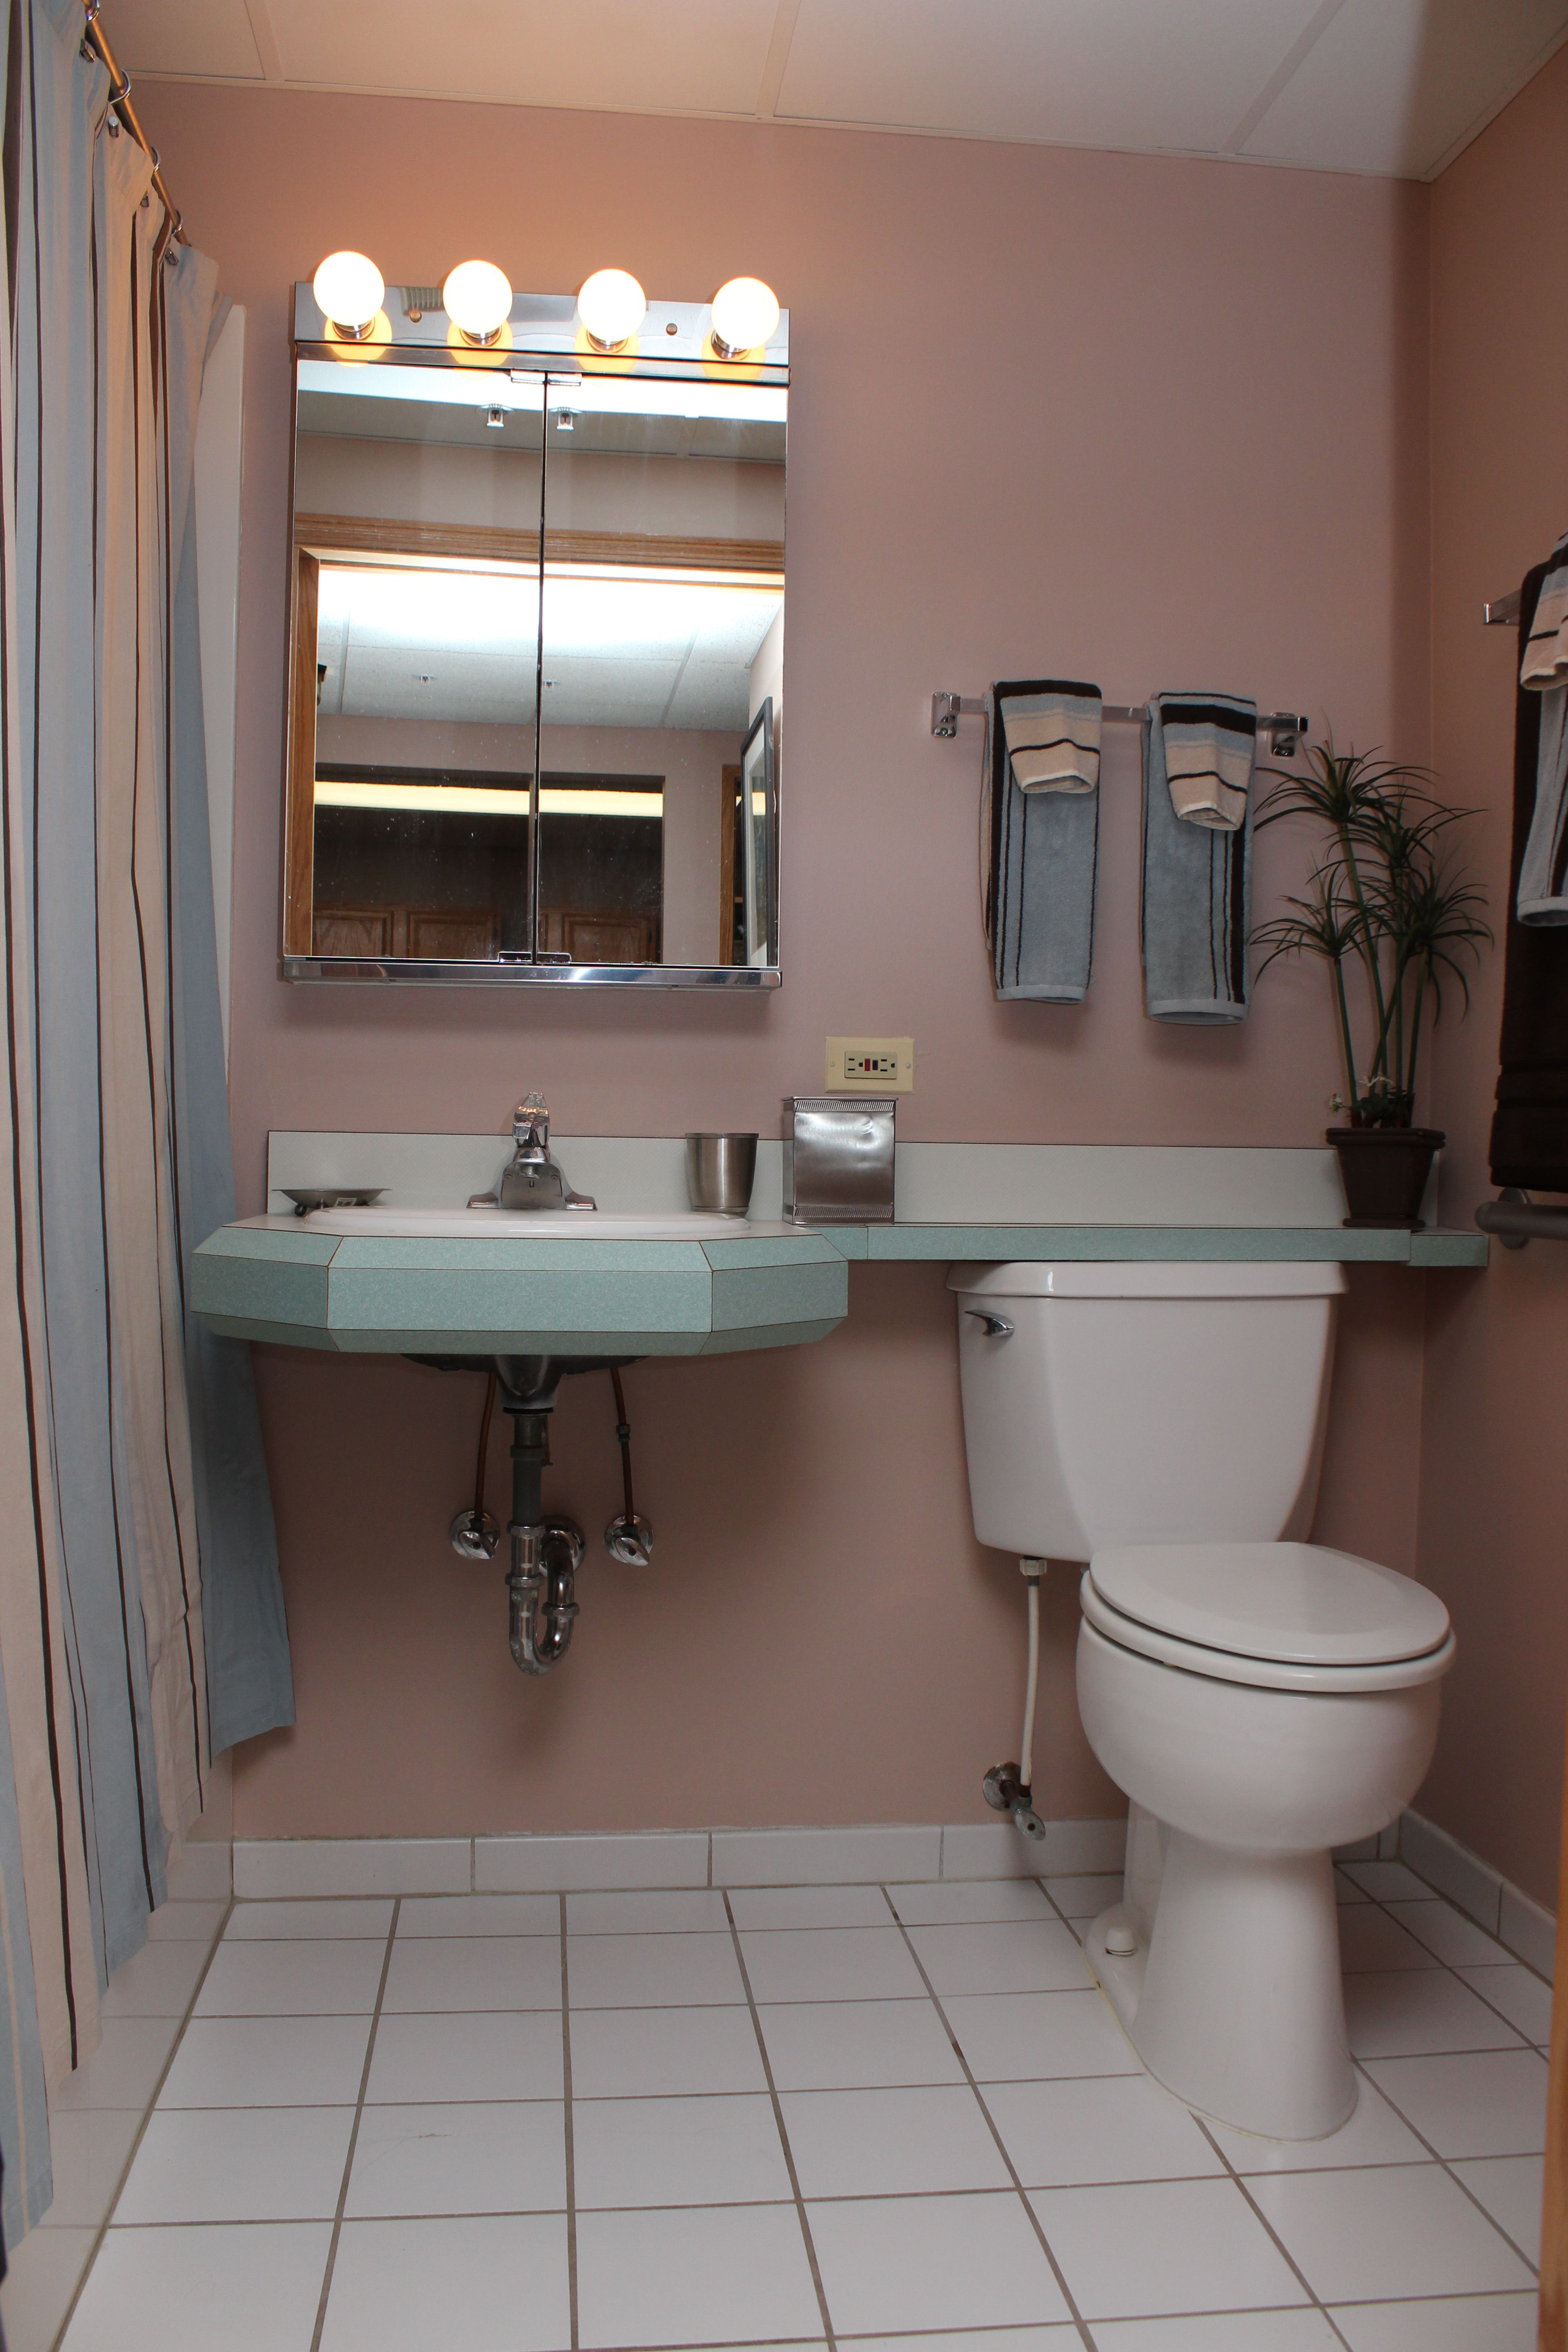 Bathroomada accessible fully equipped with grab bars raised